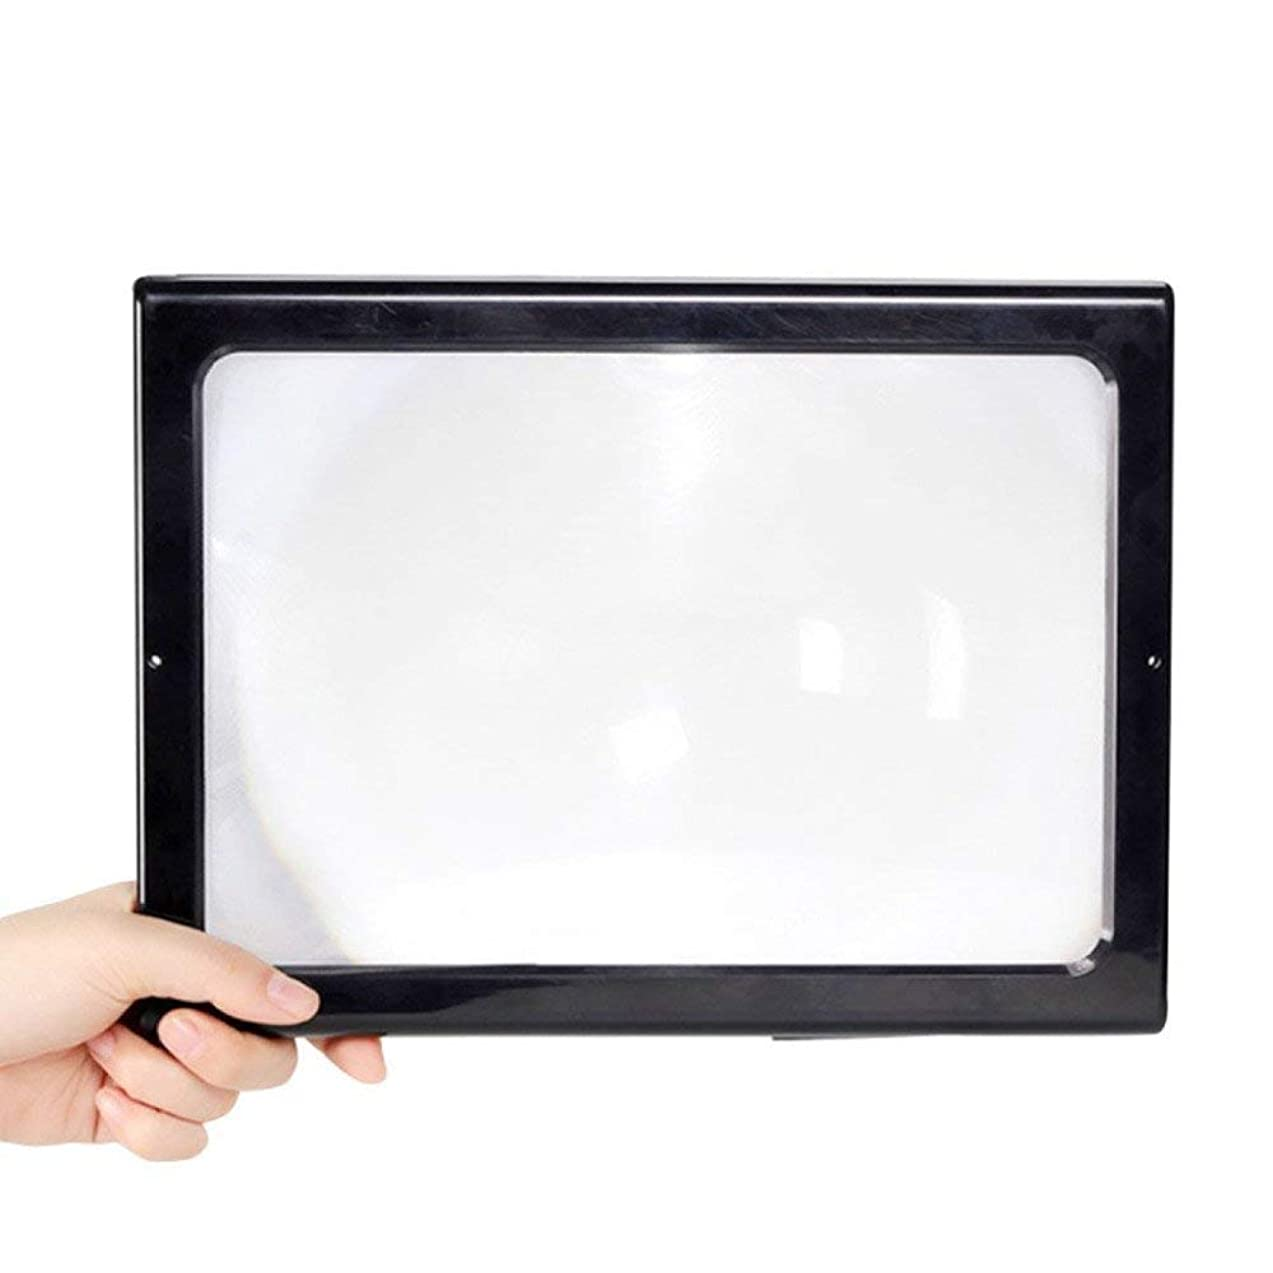 Personality Magnifier HJBH Desktop Lighting Magnifier - with LED Light 3X HD Lens for Reading Books Jewelry Label Watch DIY Crafts Engraving and Repair - Black 205 273 98mm Simple Visual Optics fo